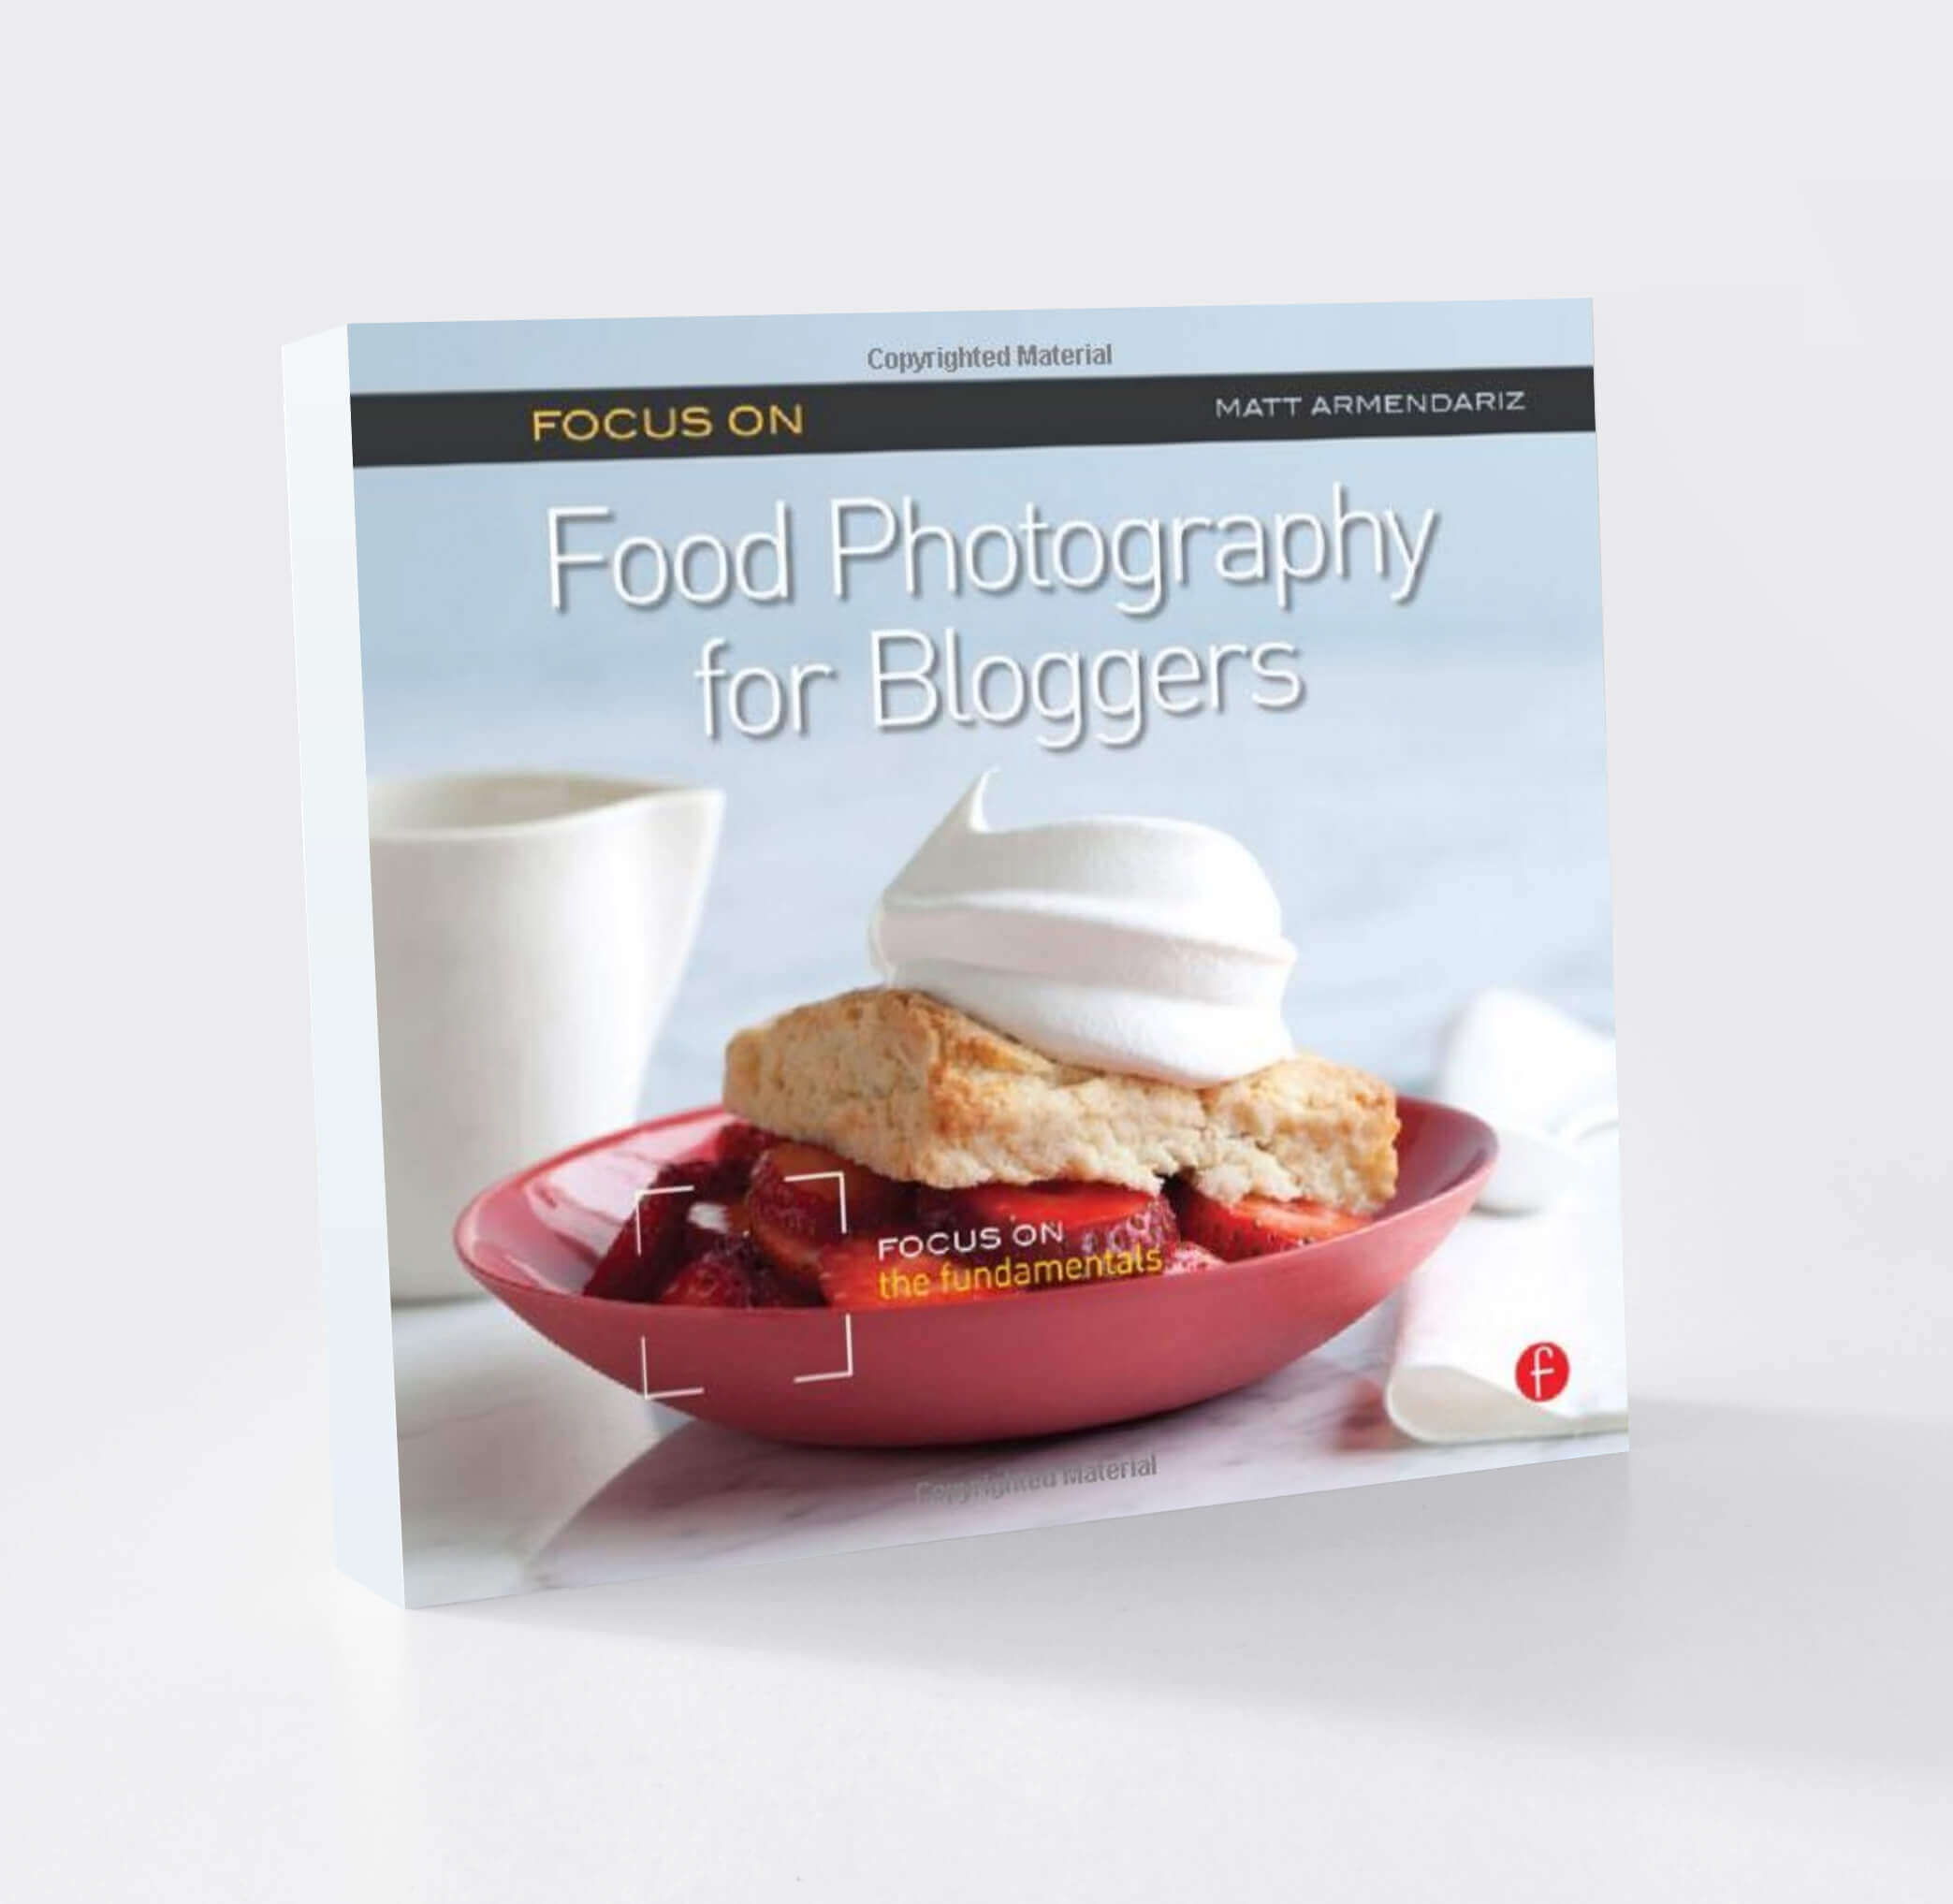 Focus on Food Photography for Bloggers Focus on the Fundamentals